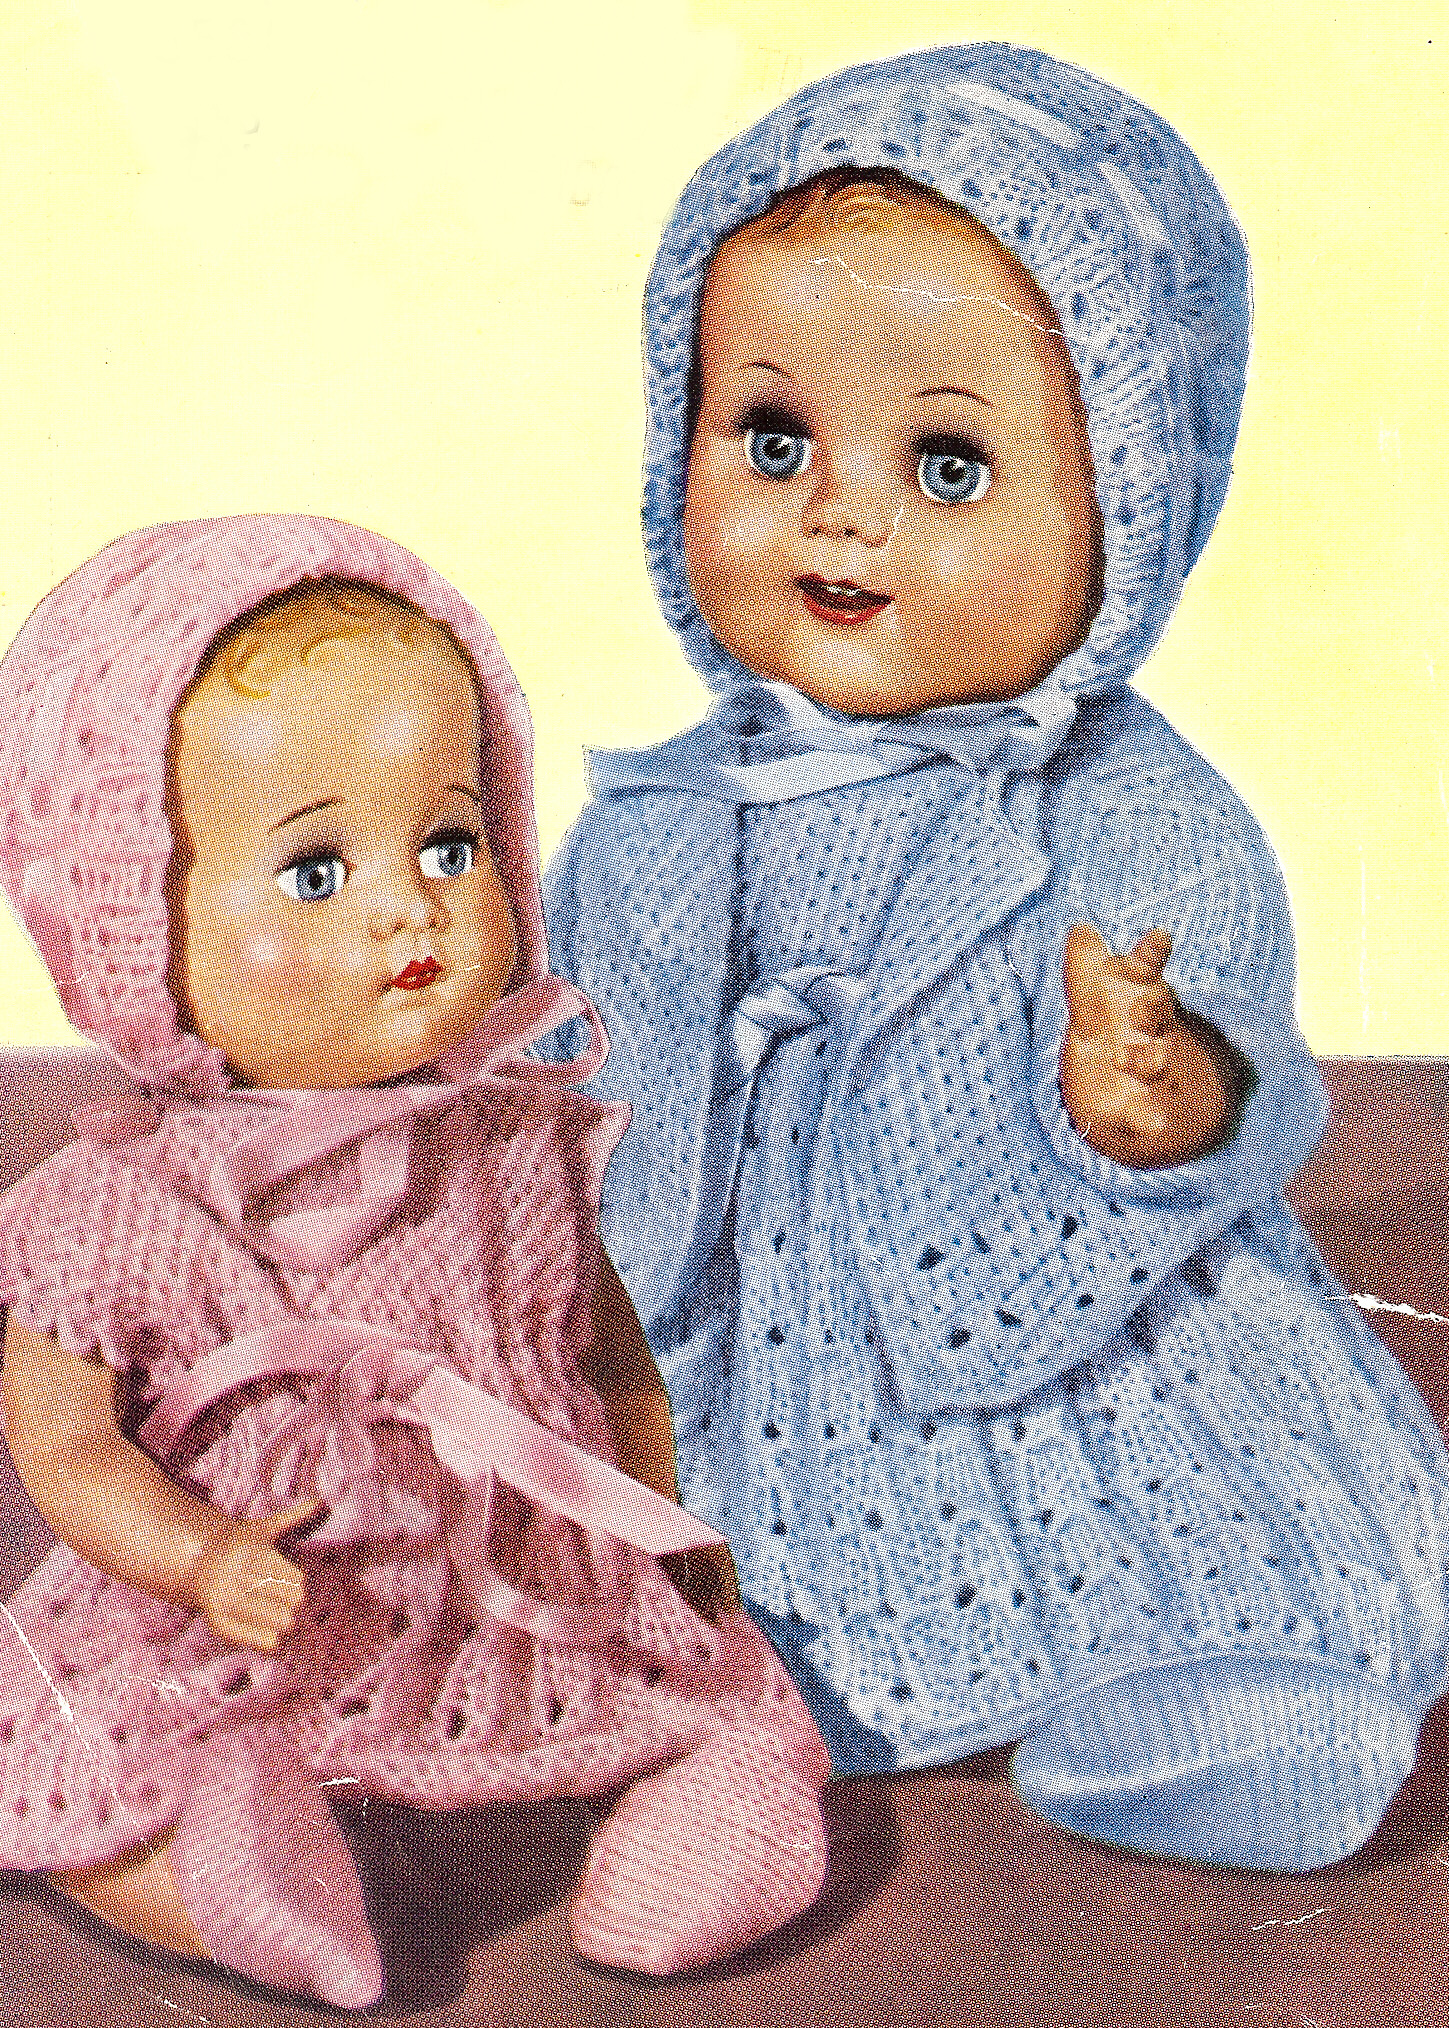 Fantastic Knit Doll Clothes Patterns Image Collection - Sewing ...